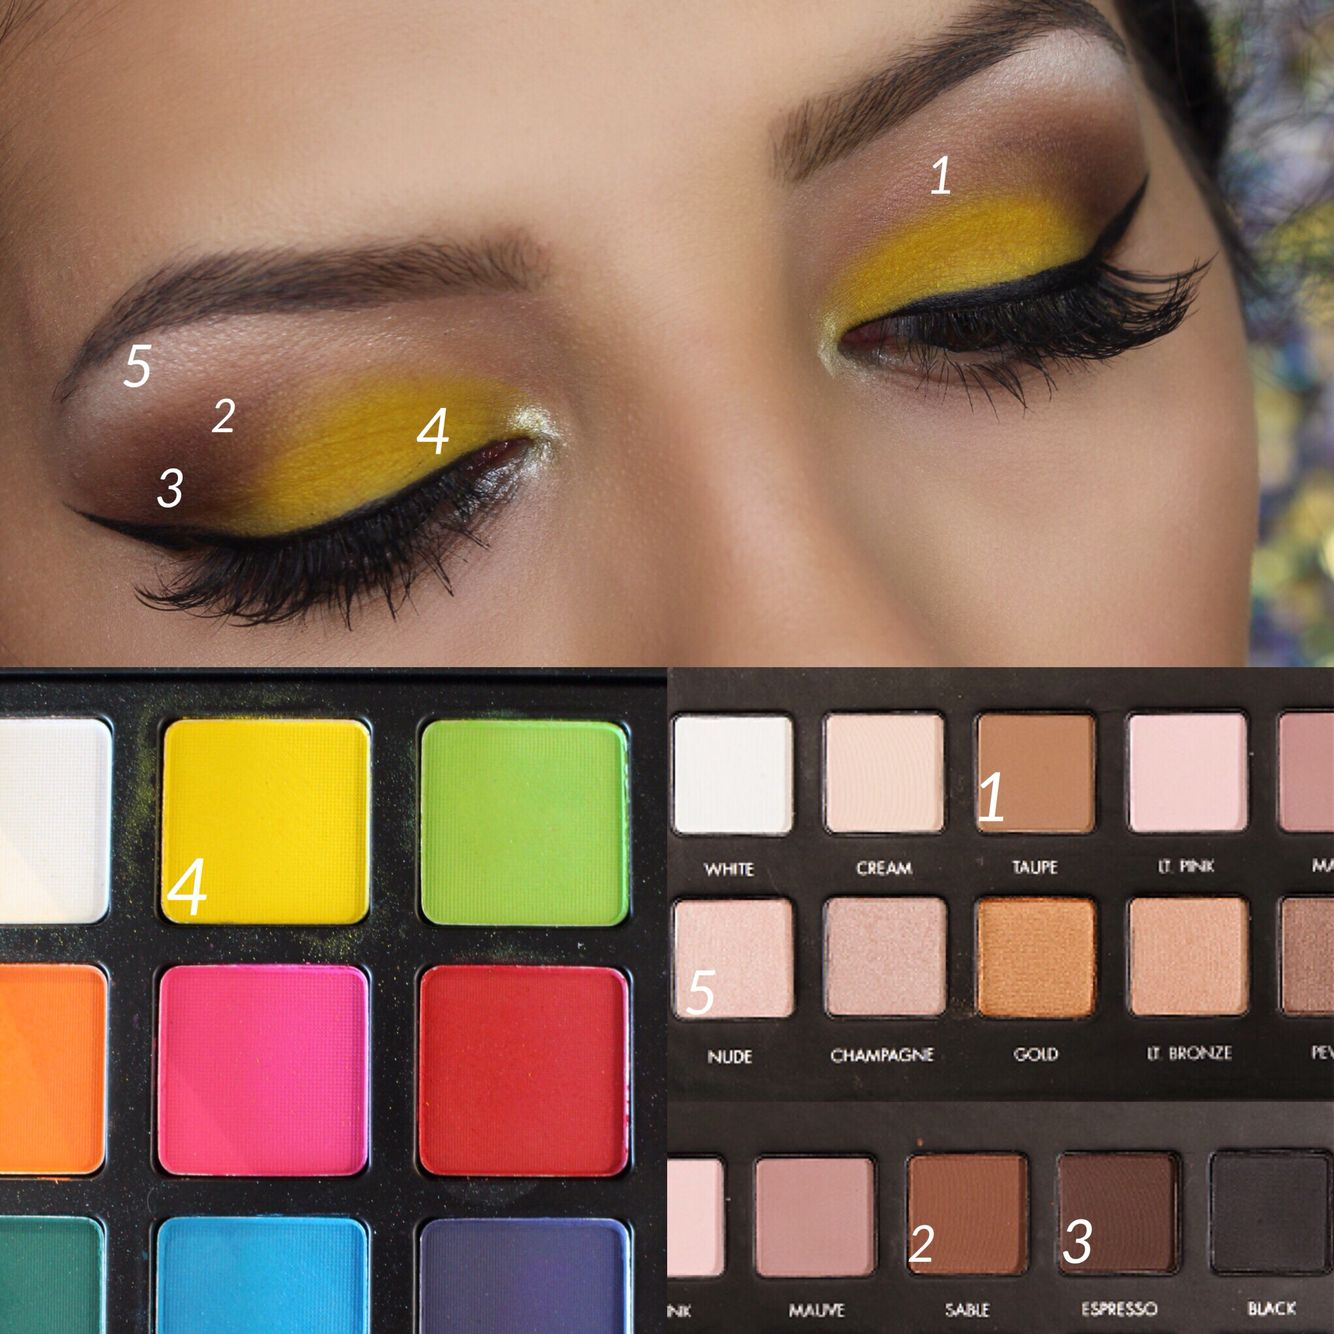 Step by step using Lorac PRO 1 Palette and Morphe 12p